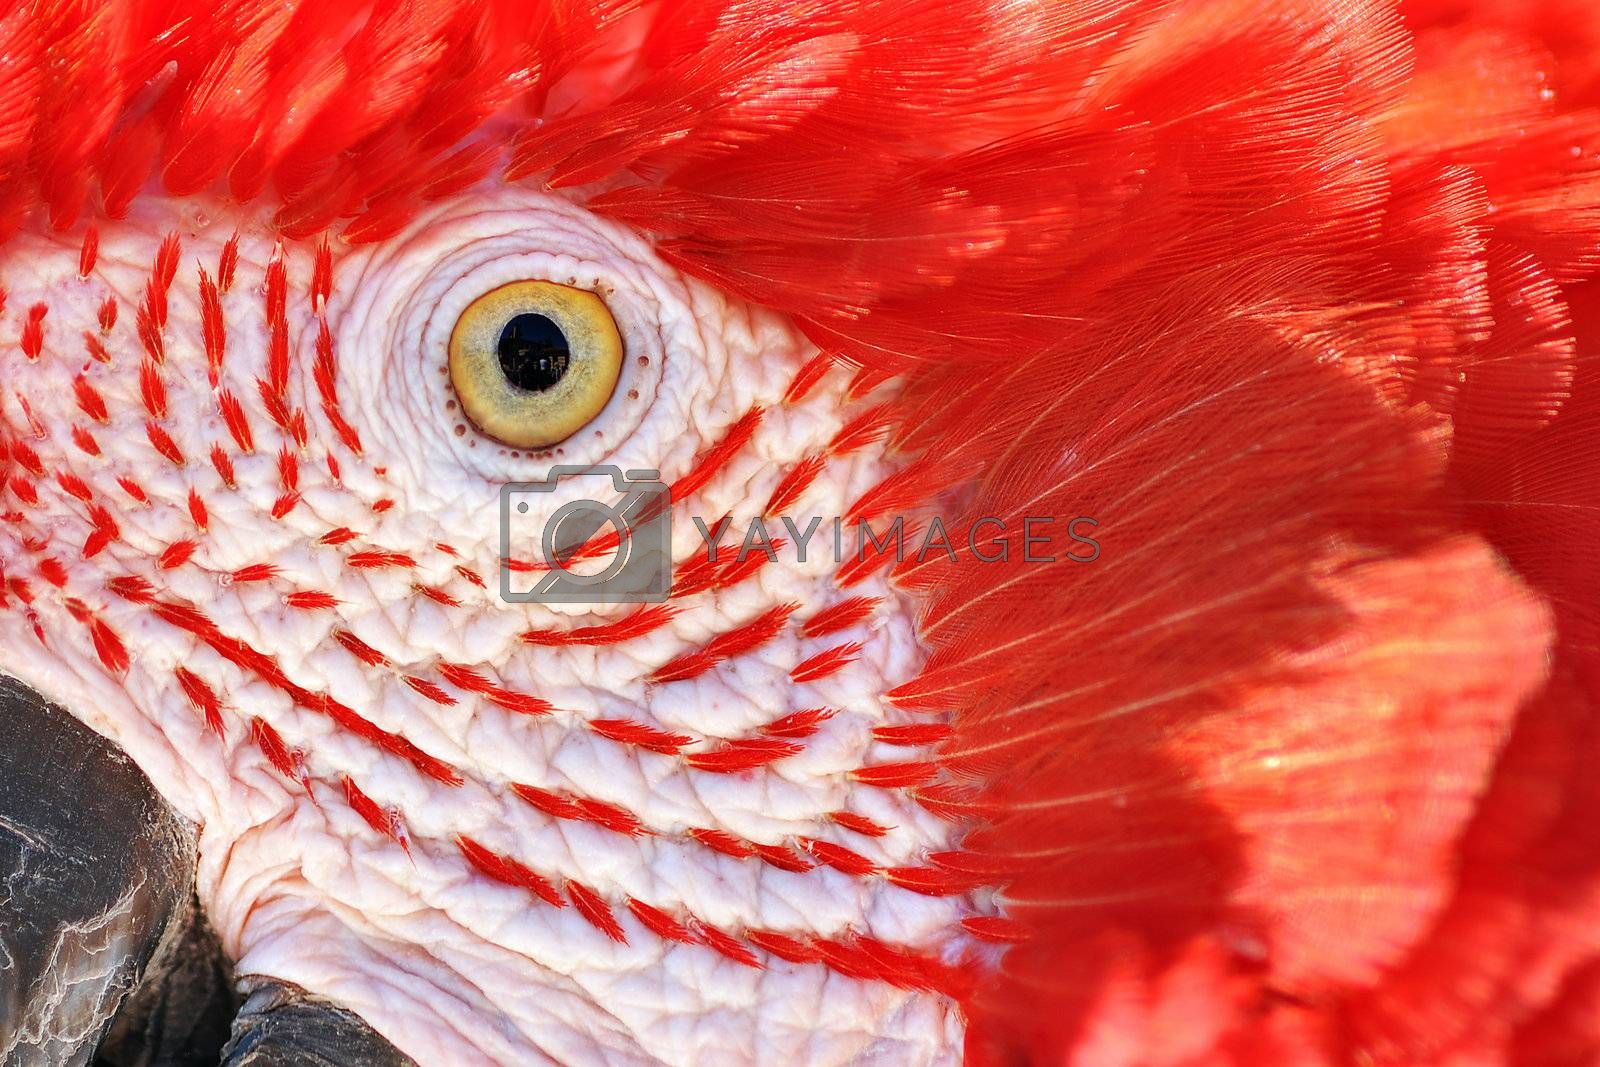 A closeup of the face of a scarlet macaw.